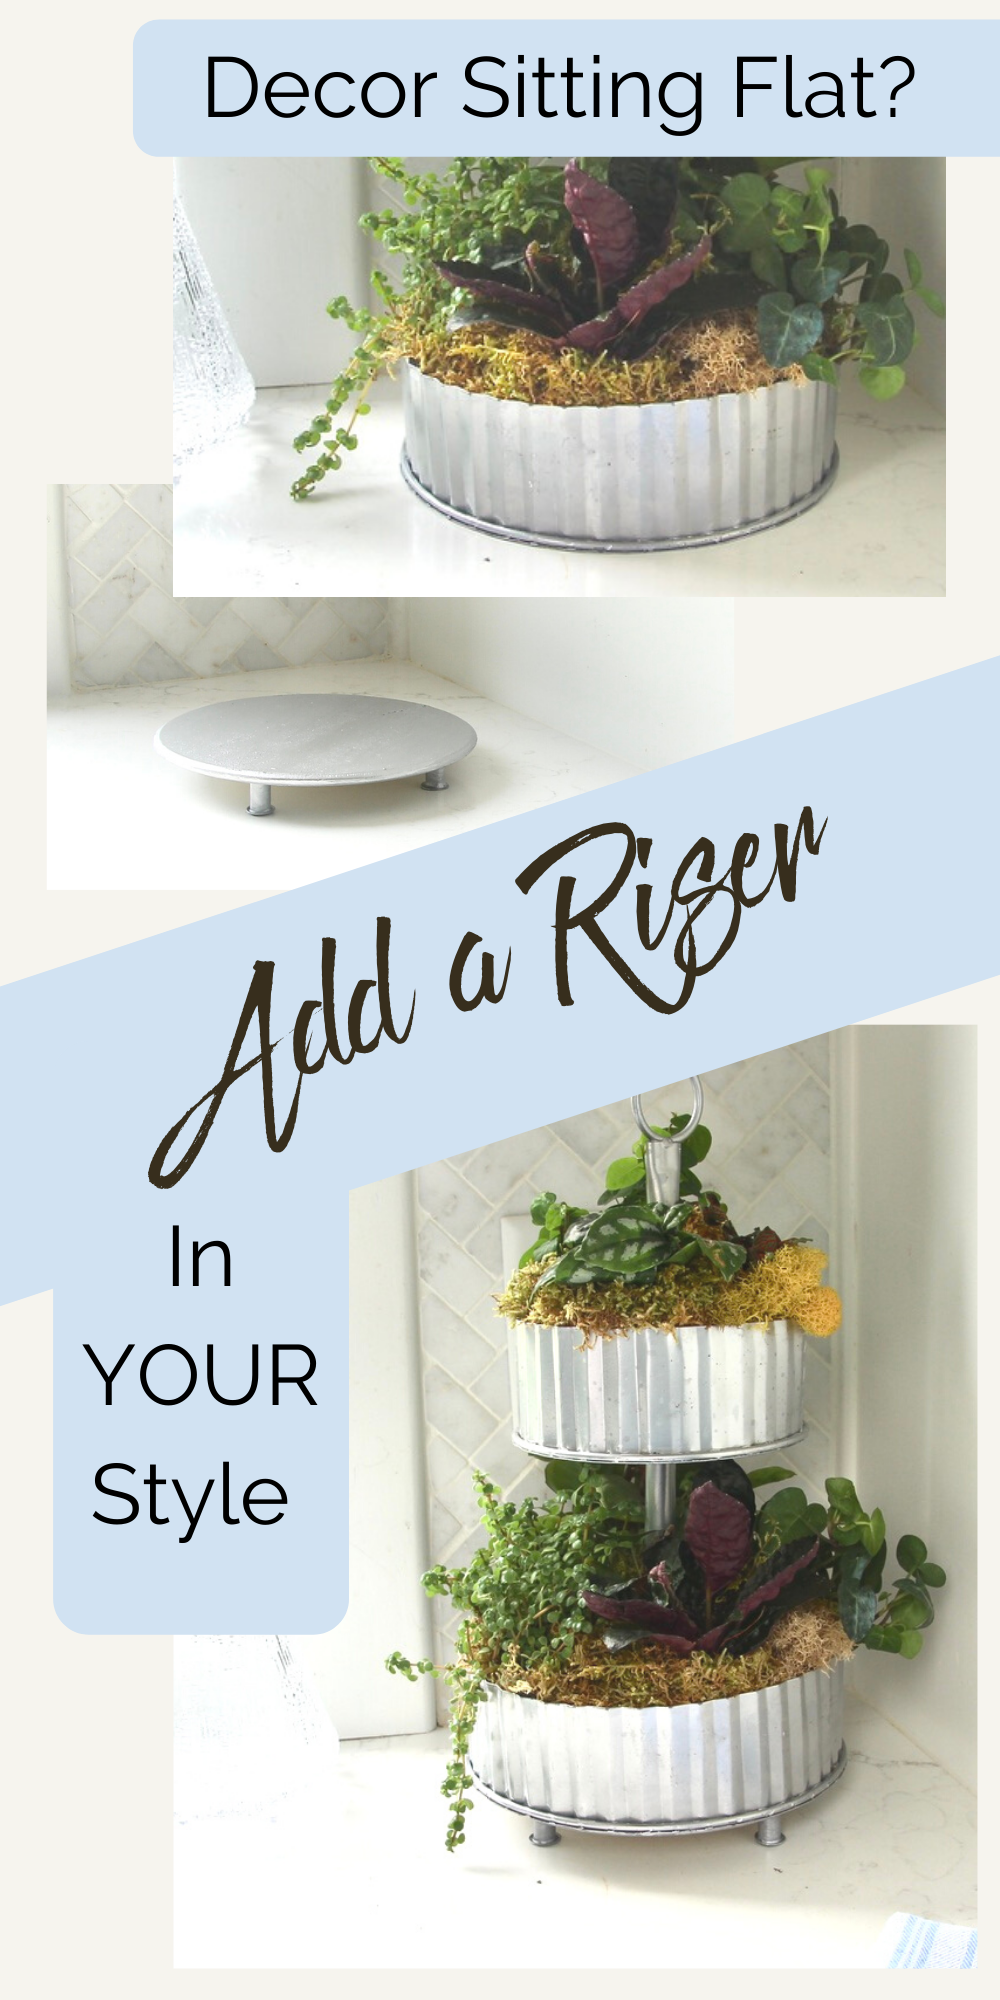 Tutorial to DIY a Display Riser for YOUR style and YOUR decor. These risers are a mashup of tray and throne. And your decor accessories will love them!  #DIYdecor #DIYdecoraccessories #DIYtray #diyriser #diydecordisplay #displayrisers #decorrisers